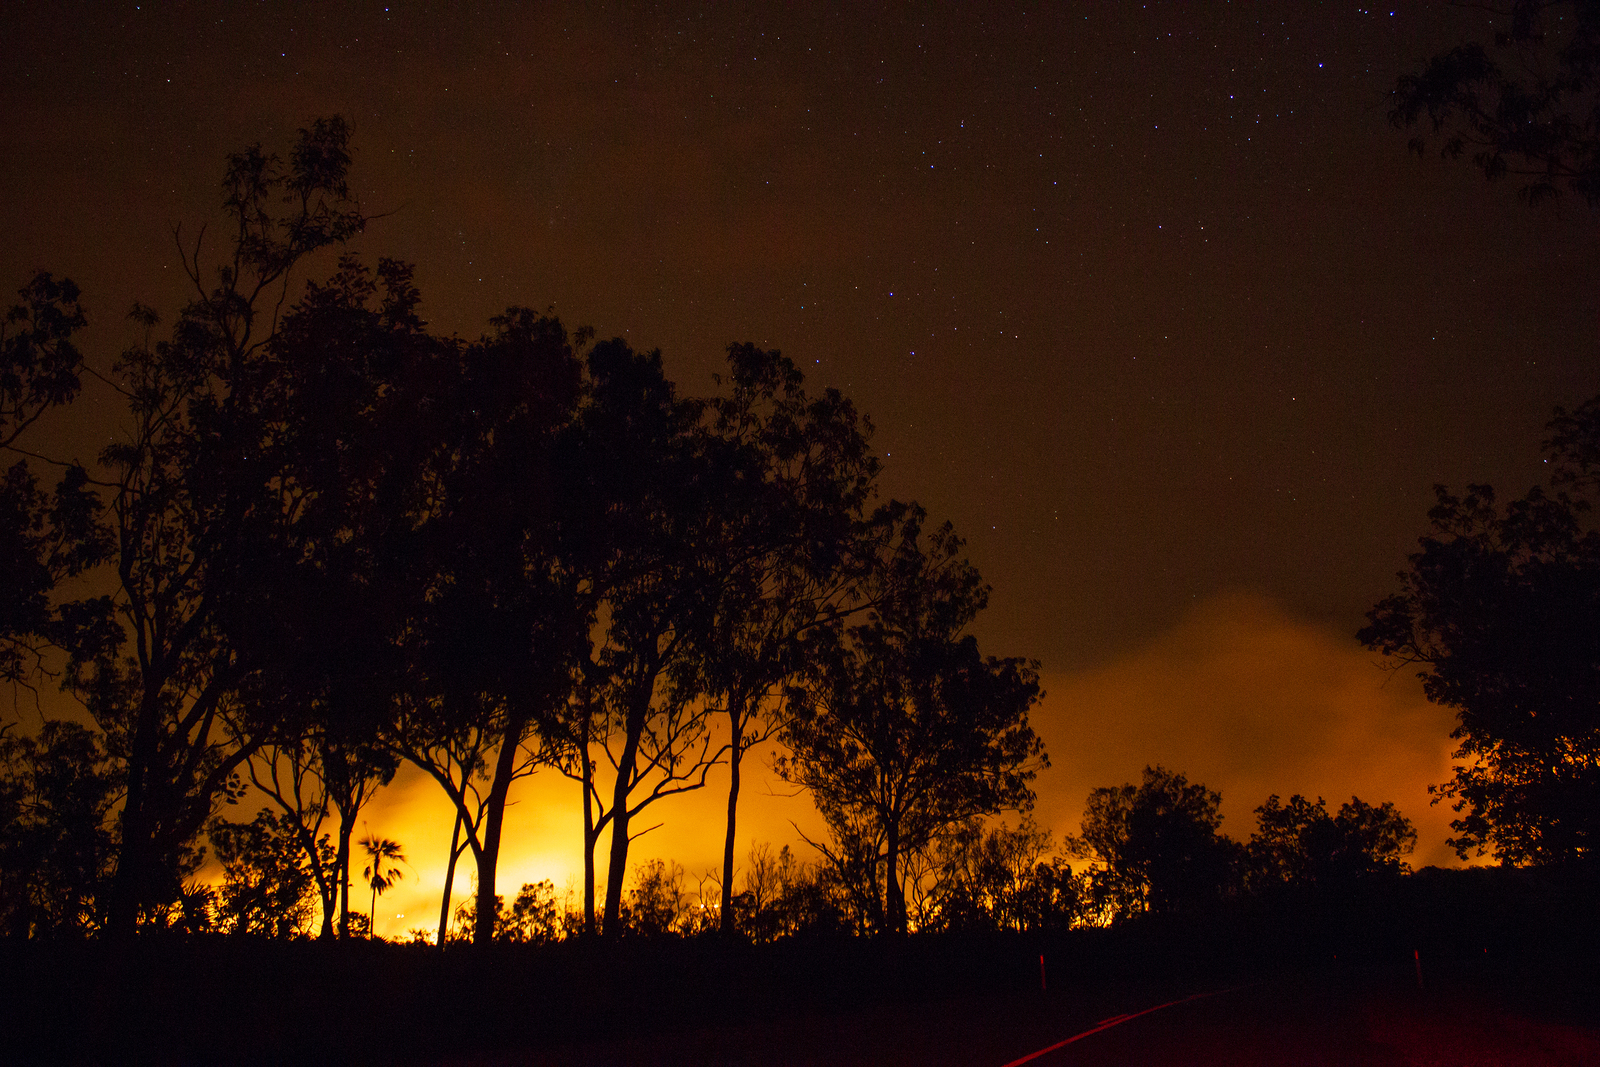 A quick update on LMI's response to the bush fires